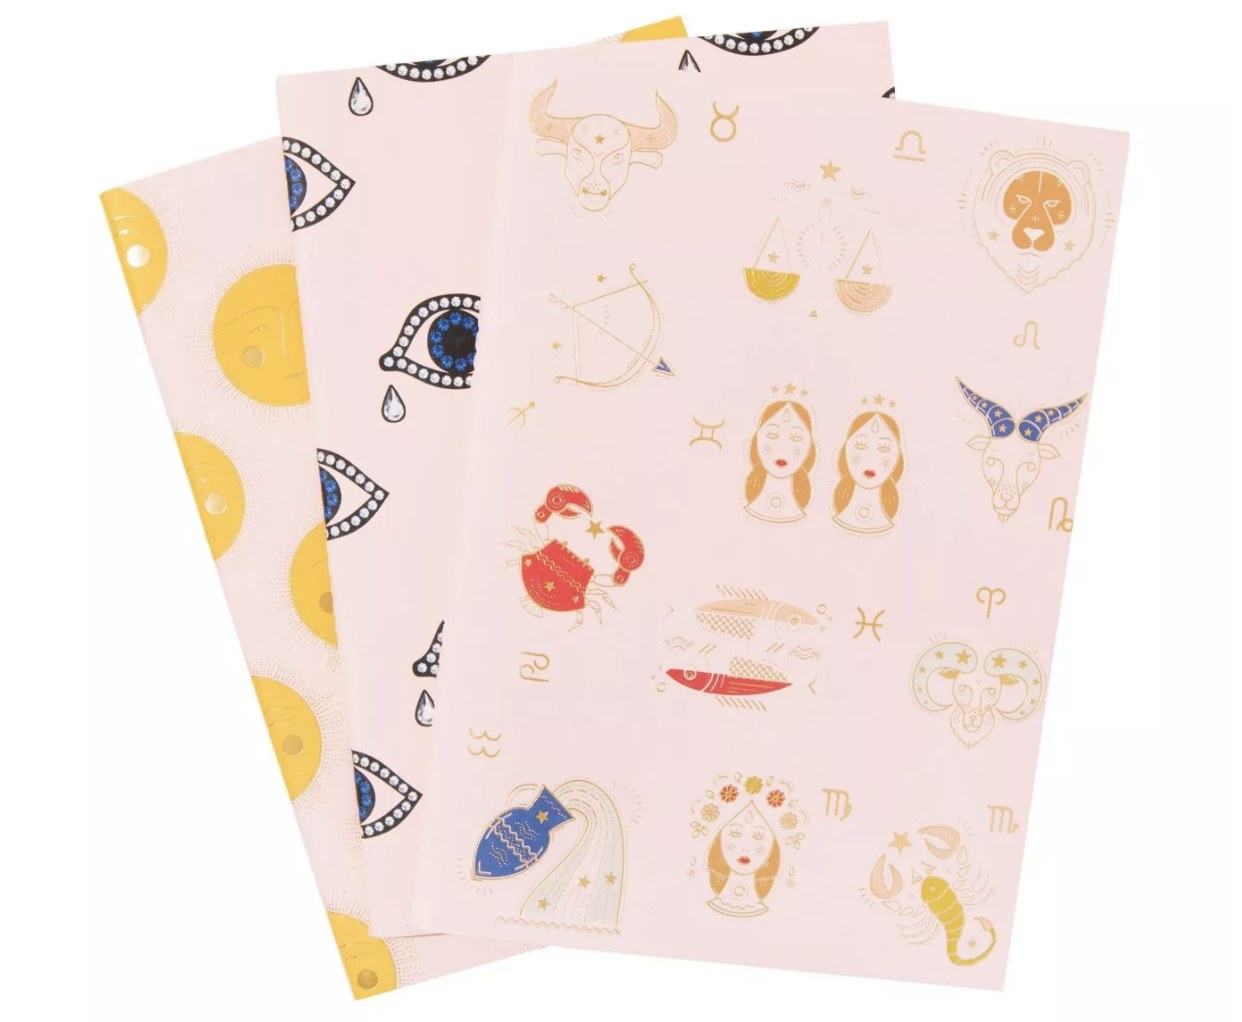 Pale pink notebooks with cartoon designs on them